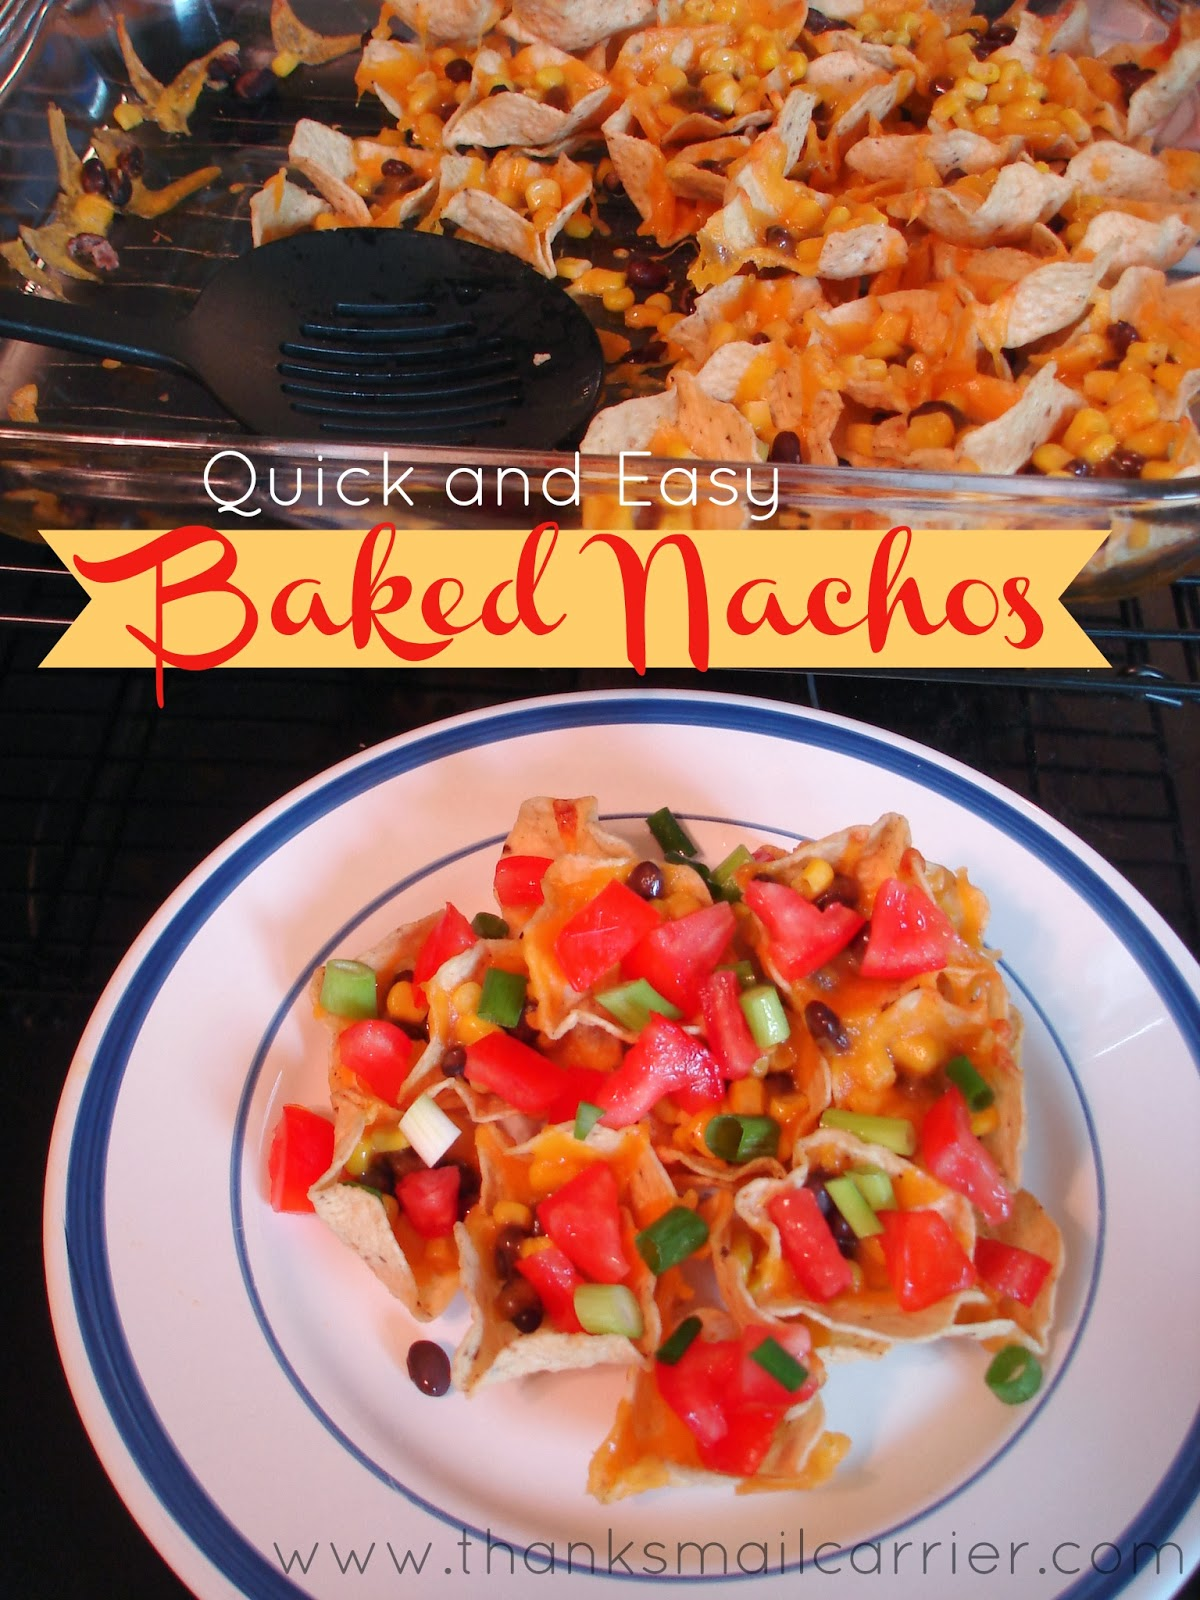 Baked Nachos recipe